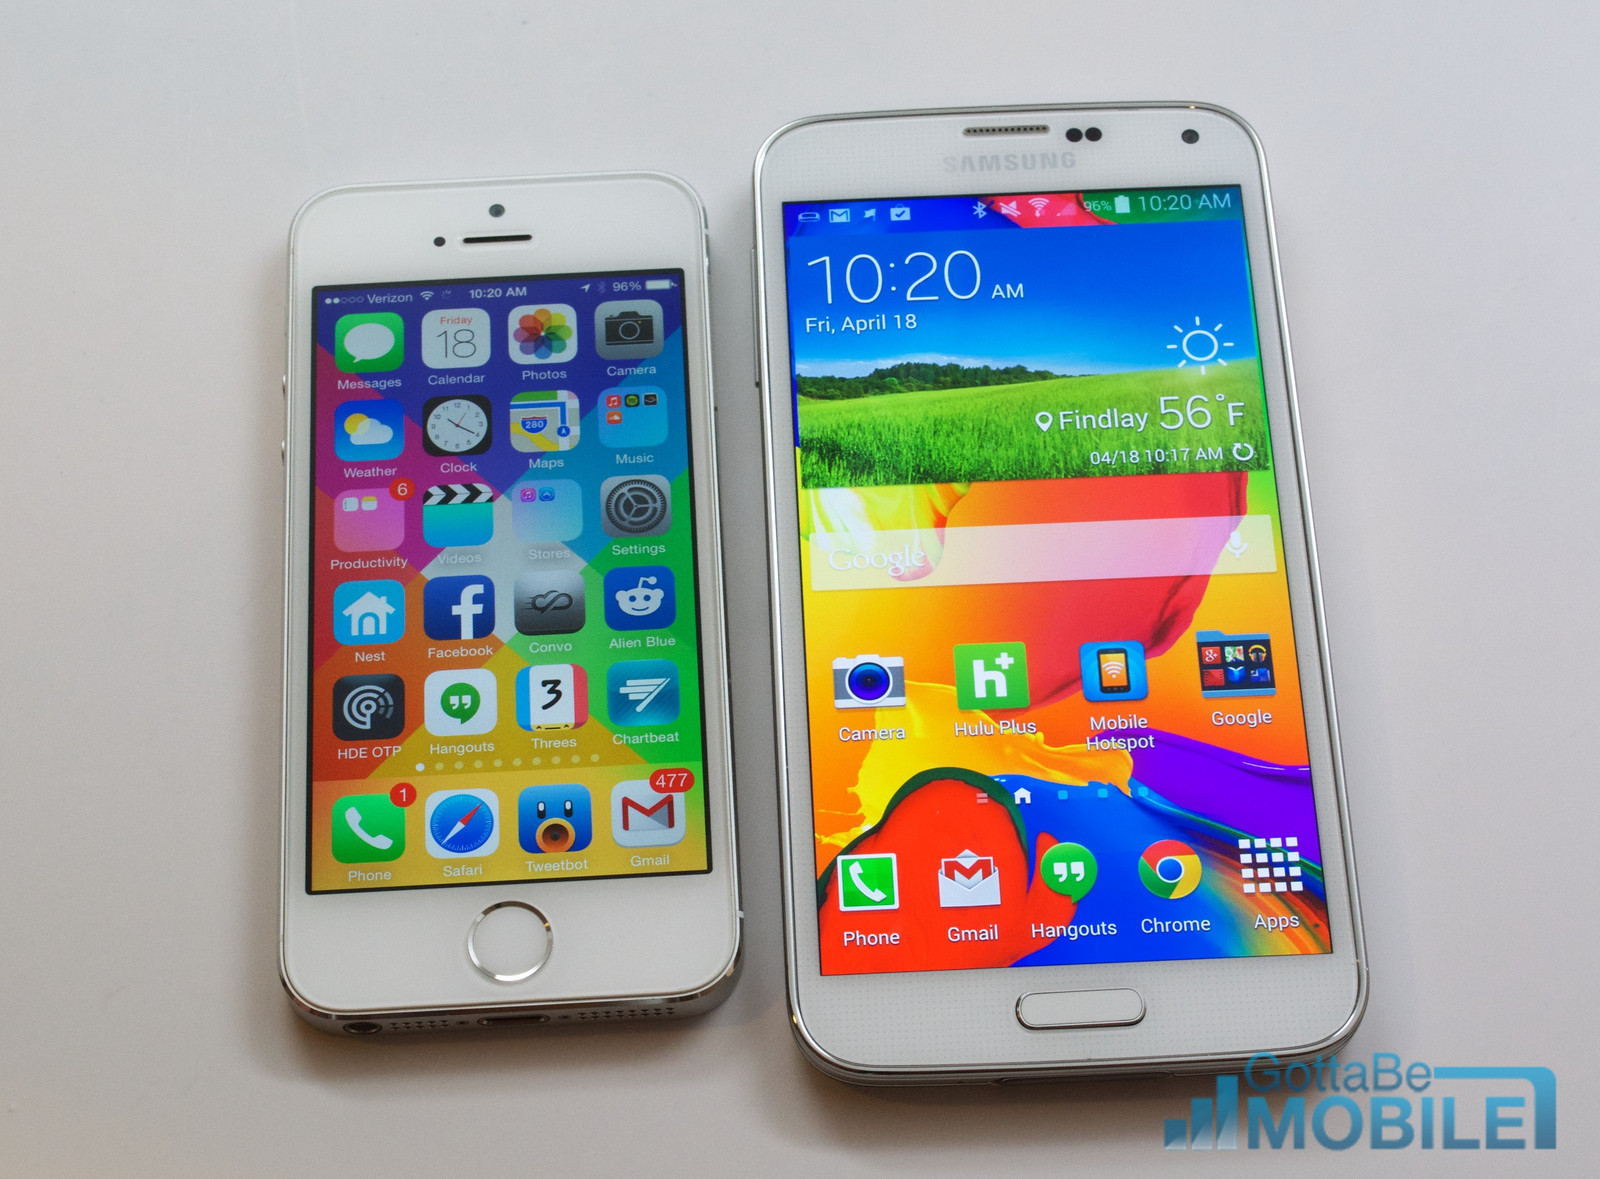 samsung galaxy s5 vs iphone 5s which should i buy video